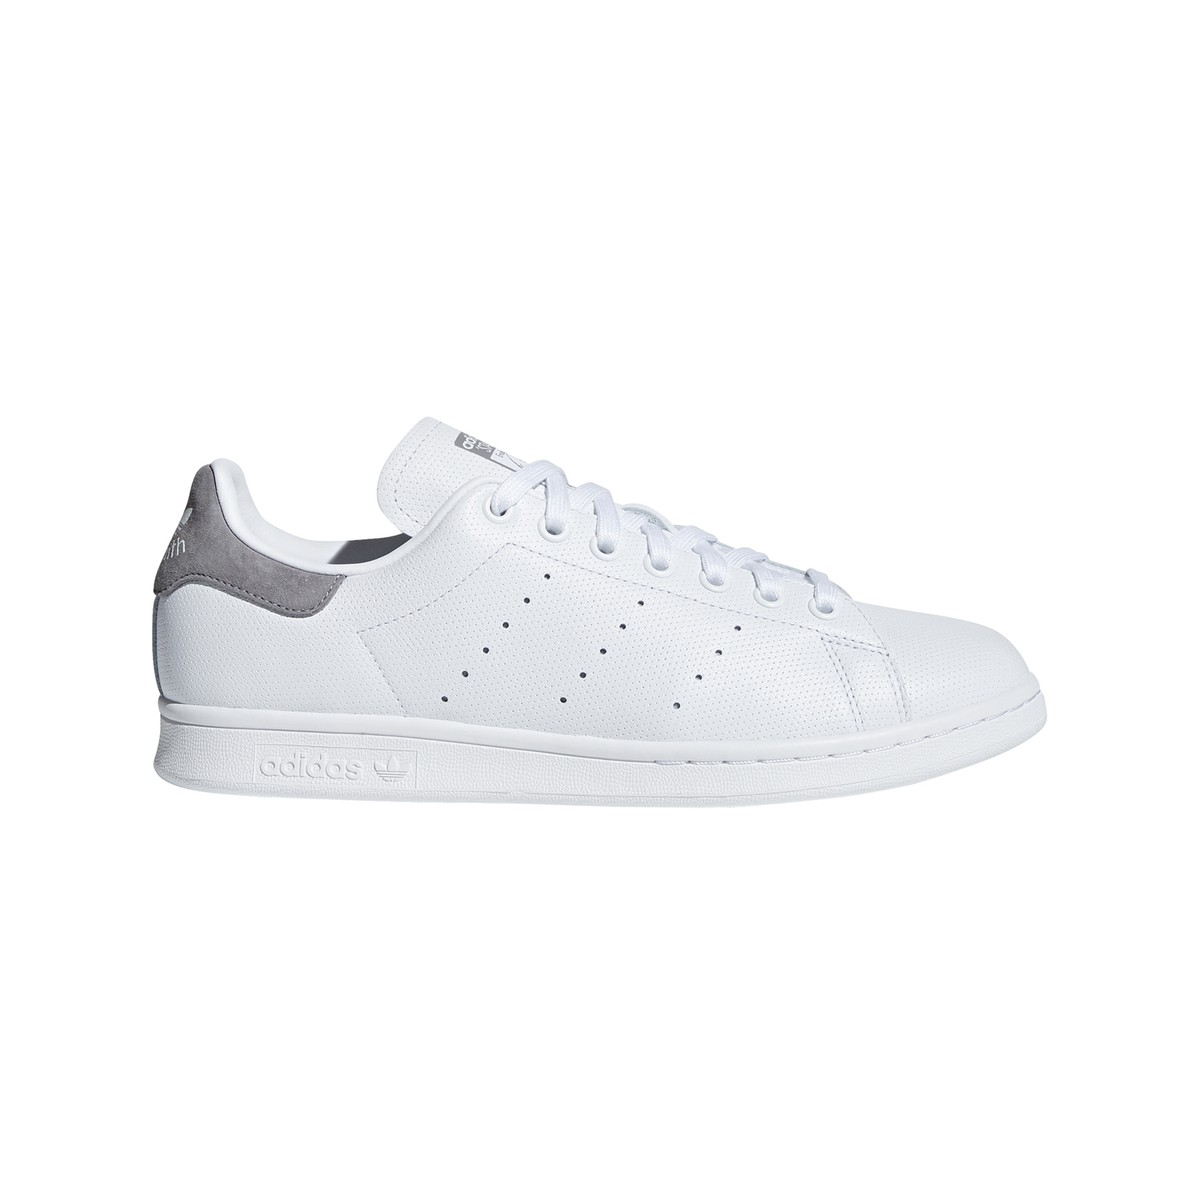 Adidas Stan Smith Trainers La Redoute £85